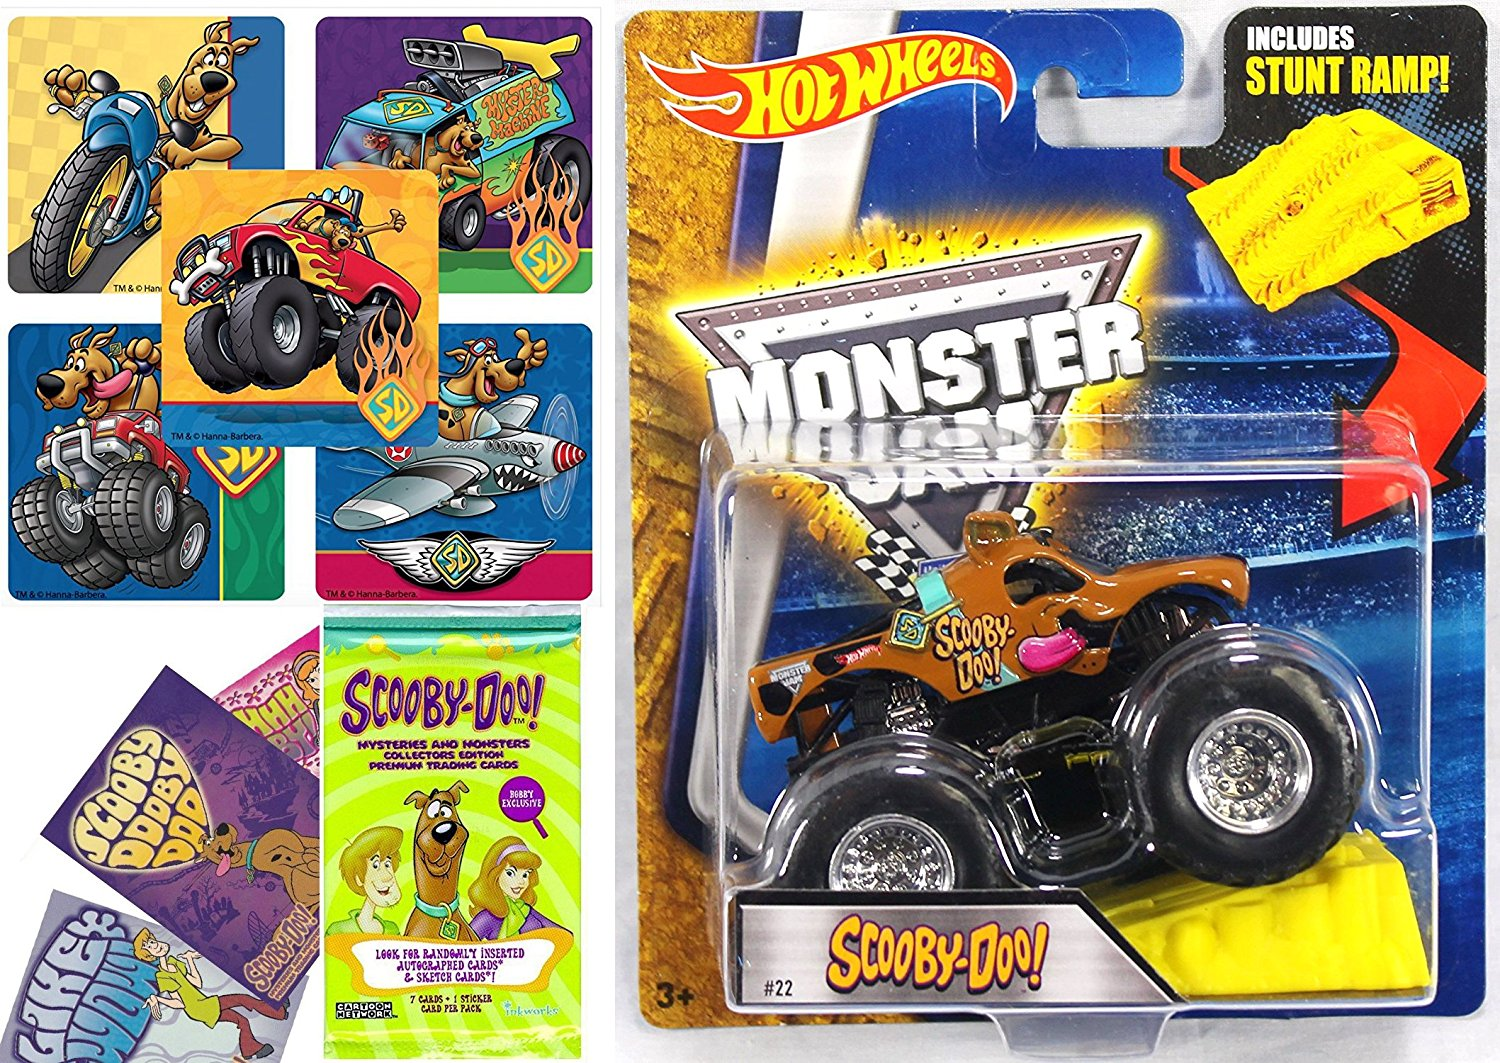 Scooby-Doo Monster Jam 2016 Hot Wheels Scooby Doo With Stunt Ramp + Stickers & Card Set Collectible Pack of Mystery Trading Cards + Monster Truck